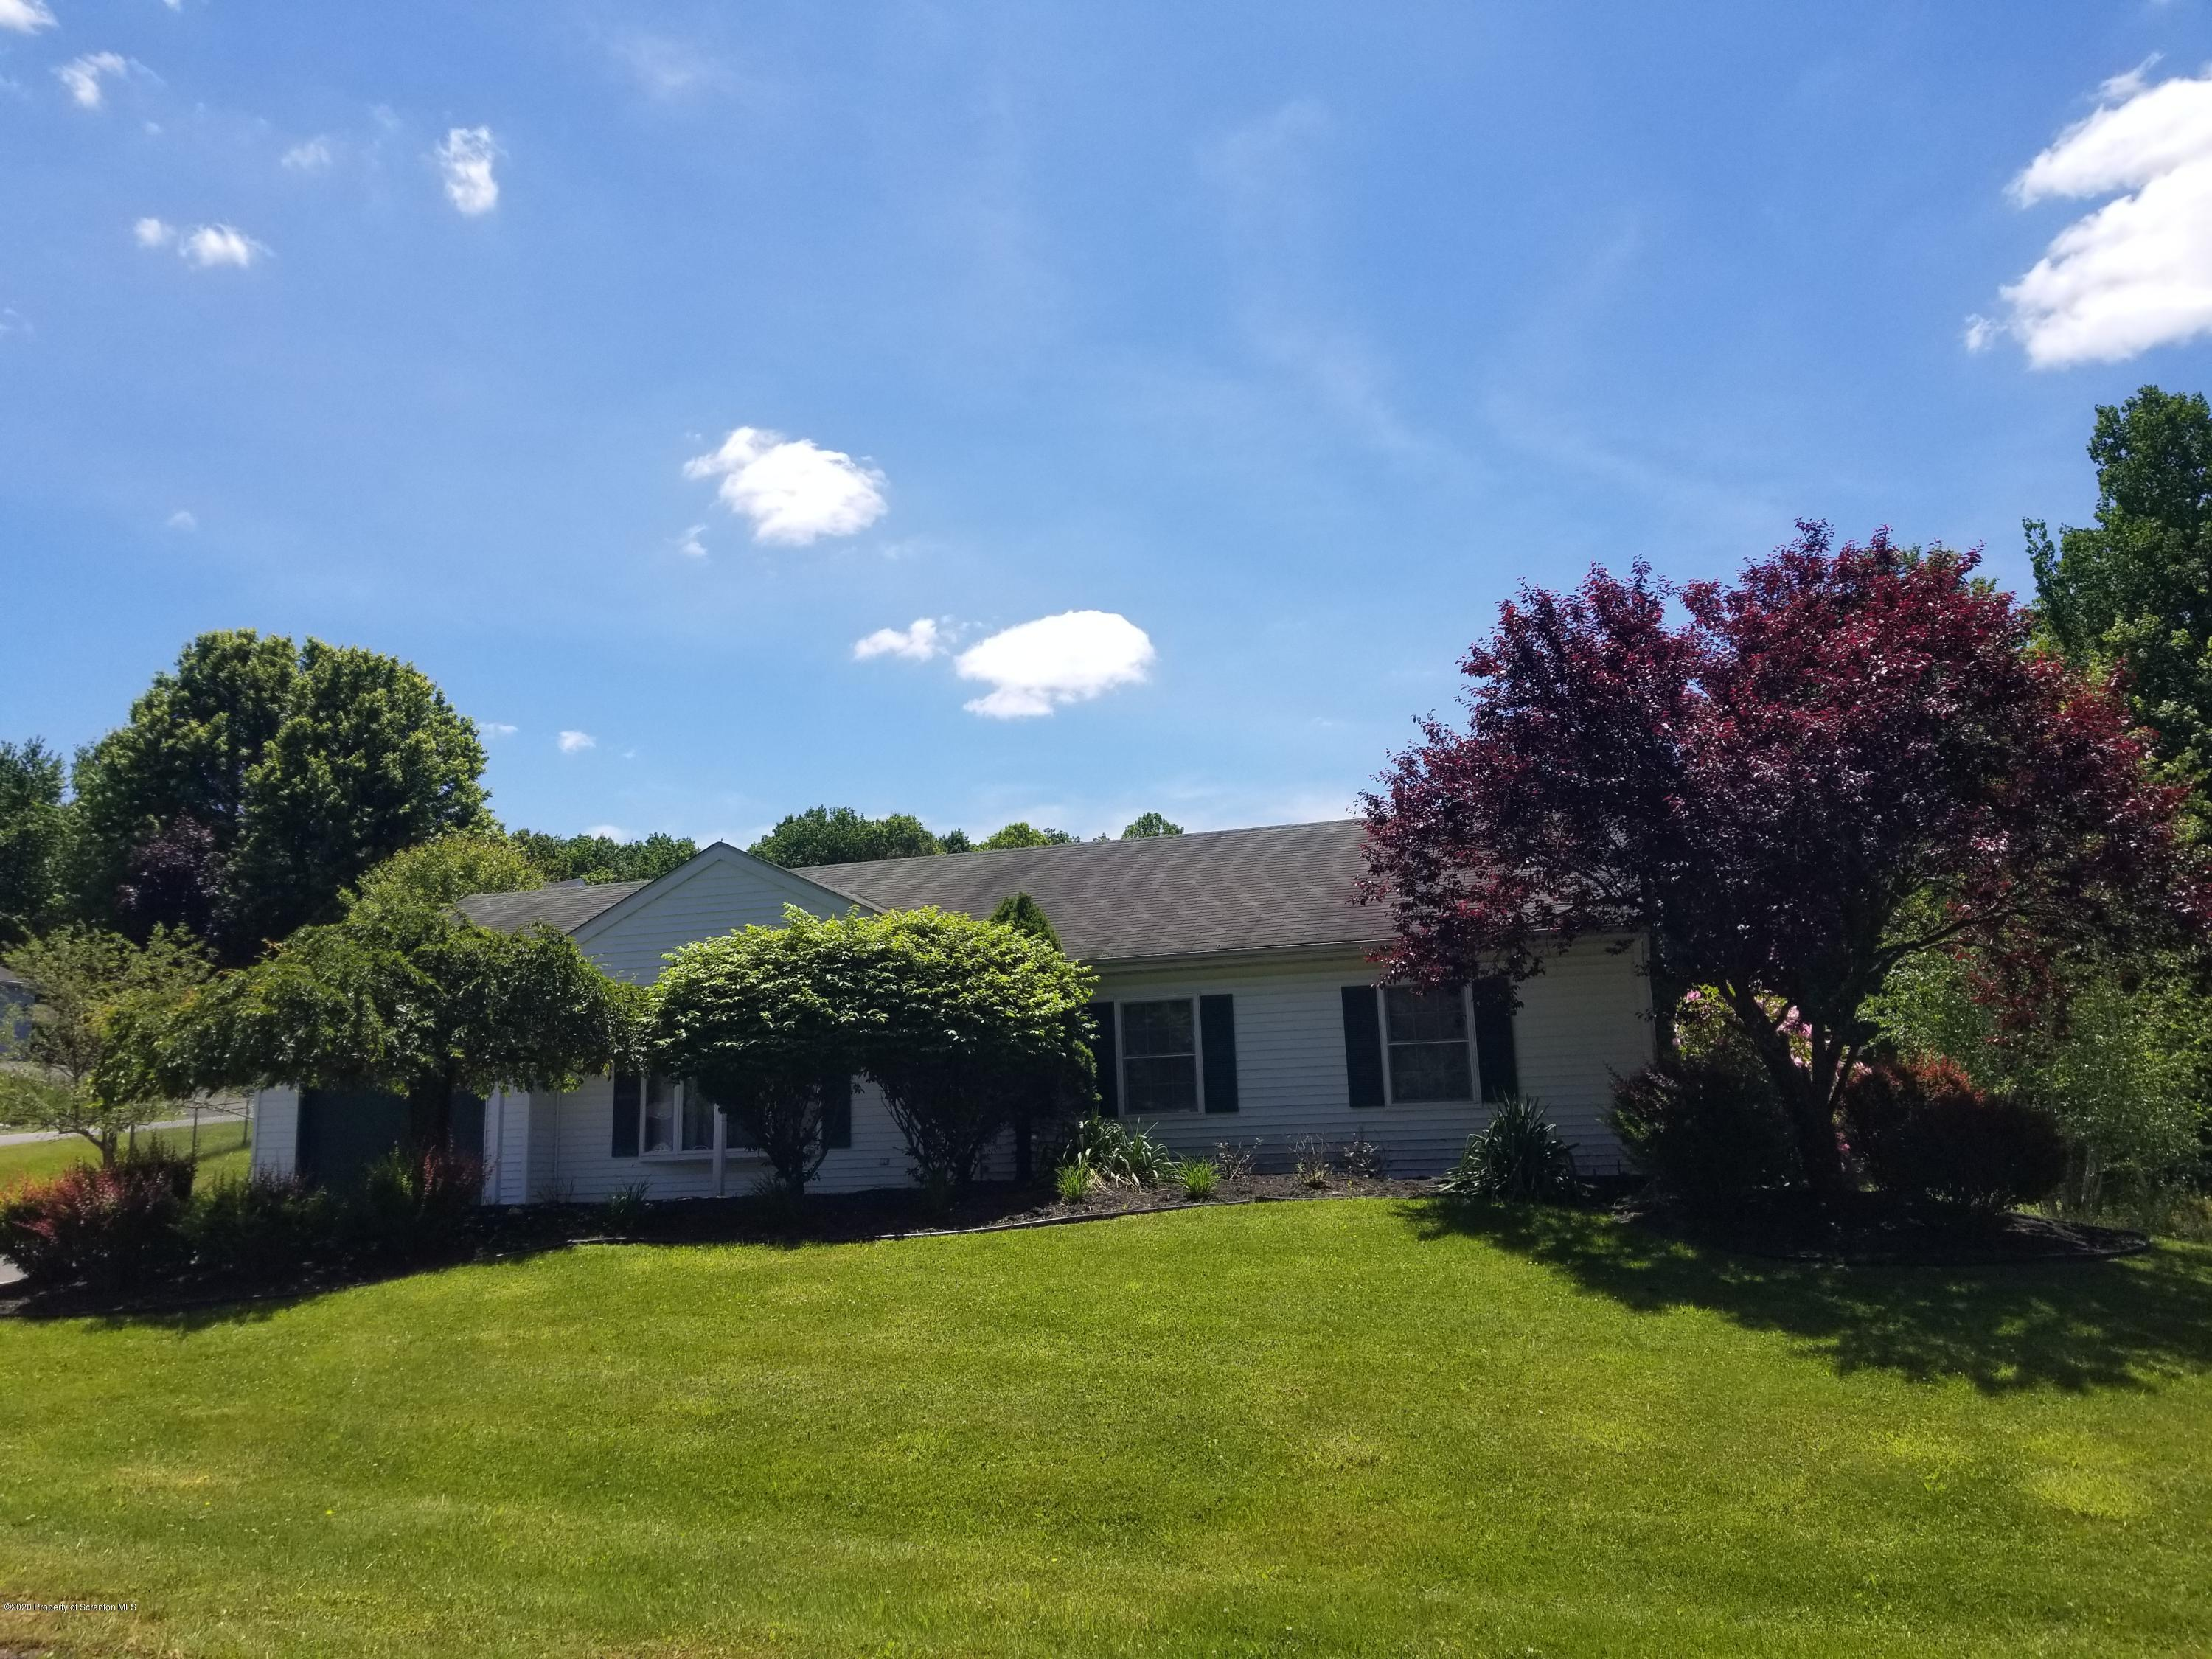 4 Stream View Court, Mountaintop, Pennsylvania 18707, 3 Bedrooms Bedrooms, 6 Rooms Rooms,1 BathroomBathrooms,Single Family,For Sale,Stream View,20-2247